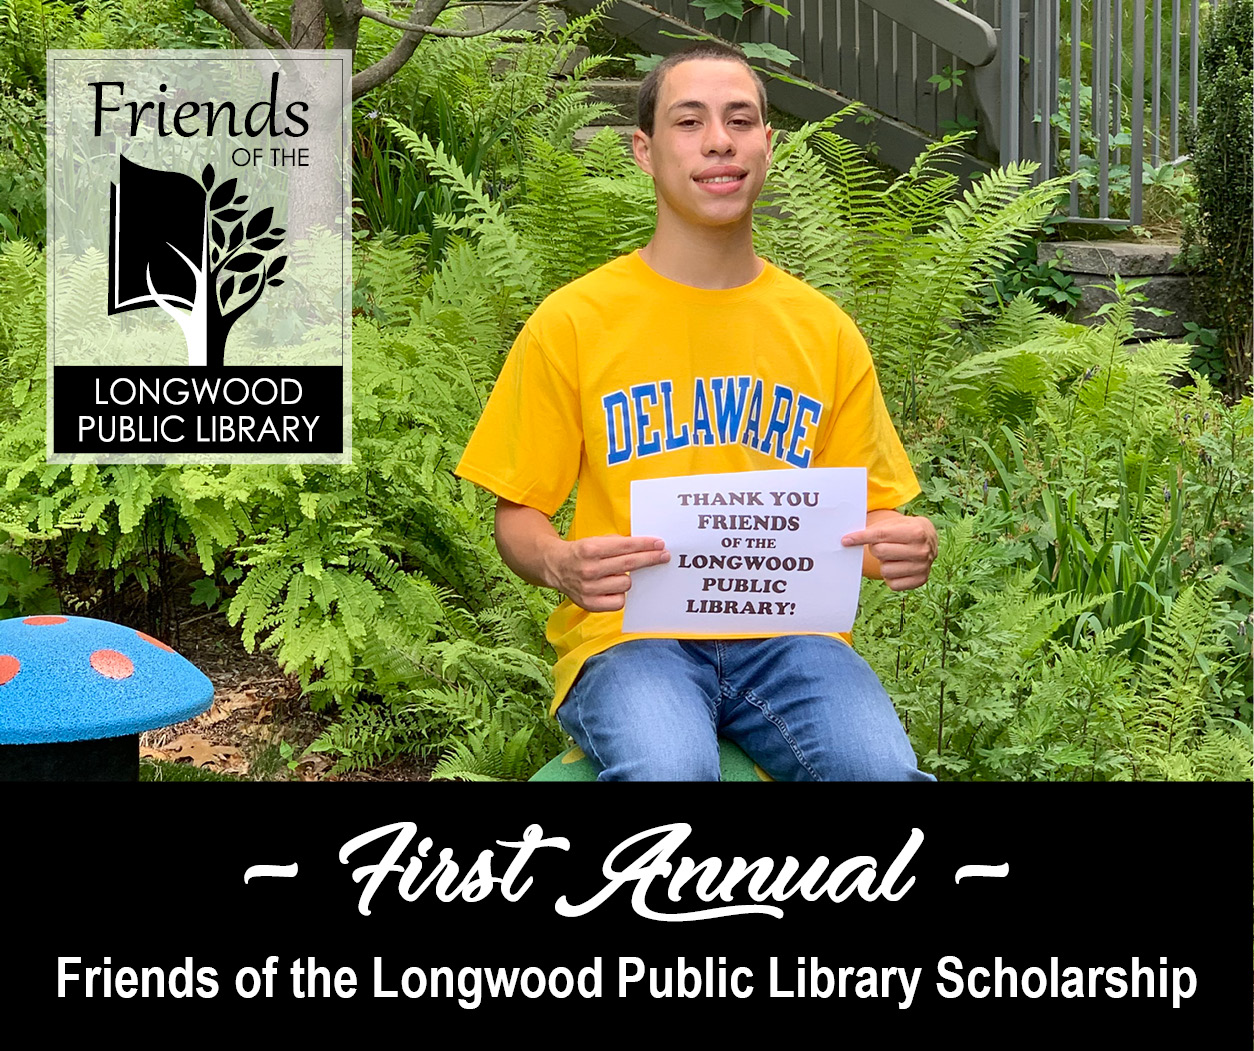 Photo of Jordon Rosales holding a sign that says thank you Friends of the Library